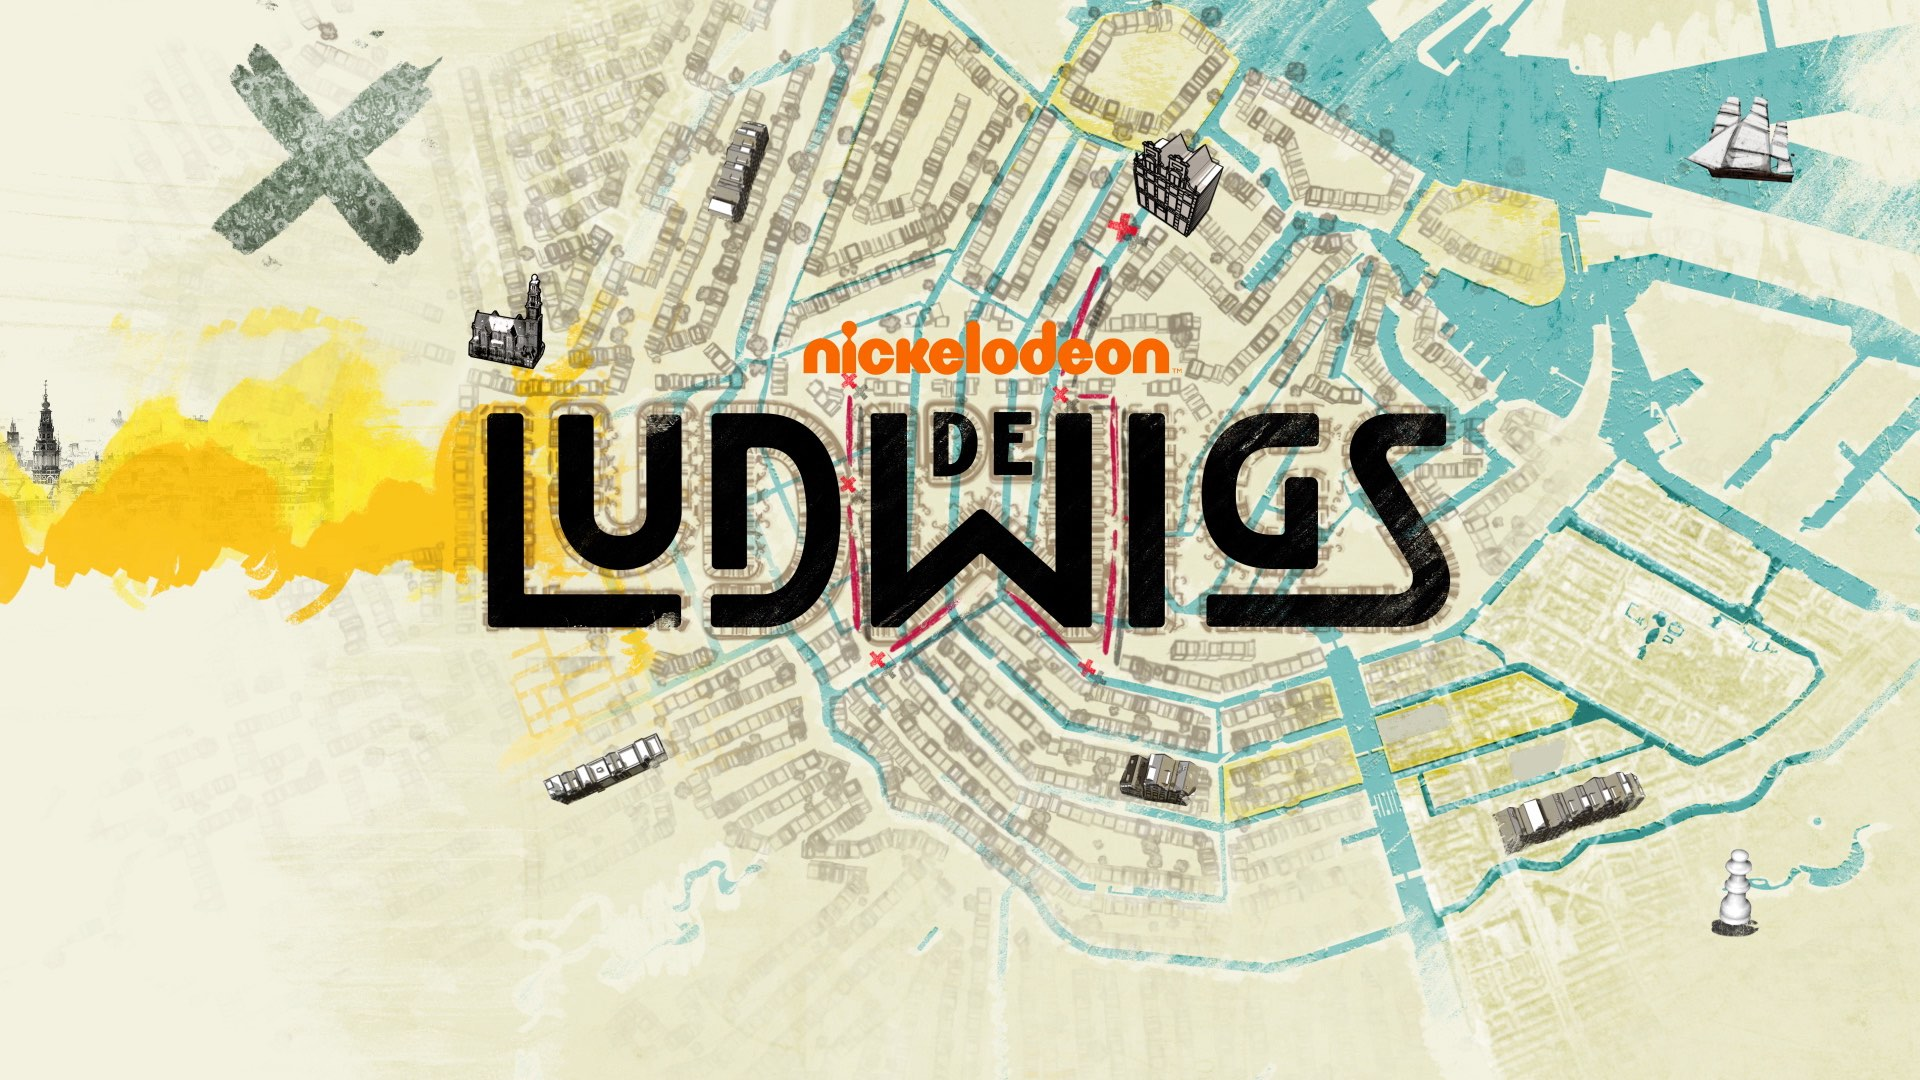 Nickelodeon: The Ludwigs